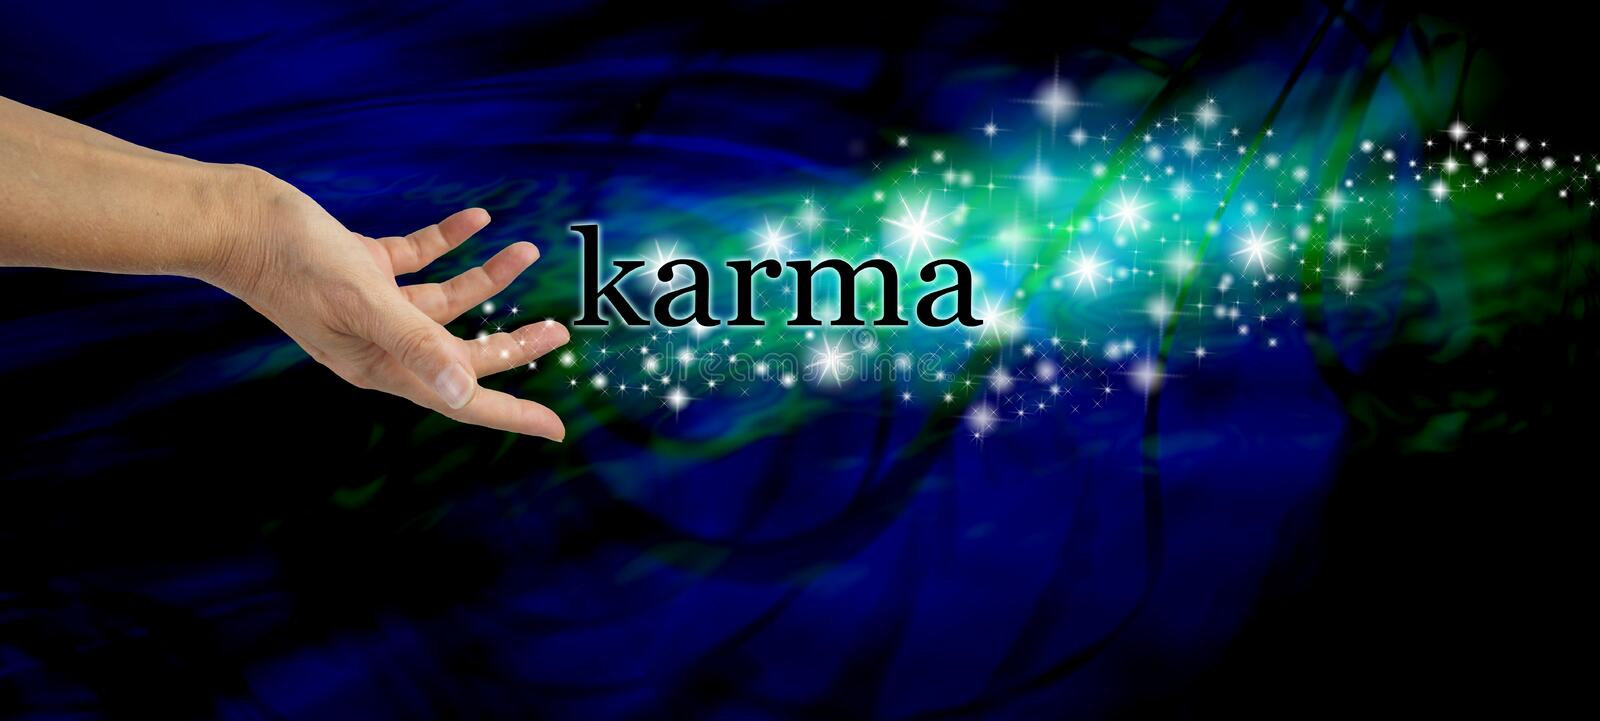 Creating Karma. Female hand outstretched with the word 'Karma' floating away amongst a stream of sparkles on a dark blue swirling background with a swirl of stock images